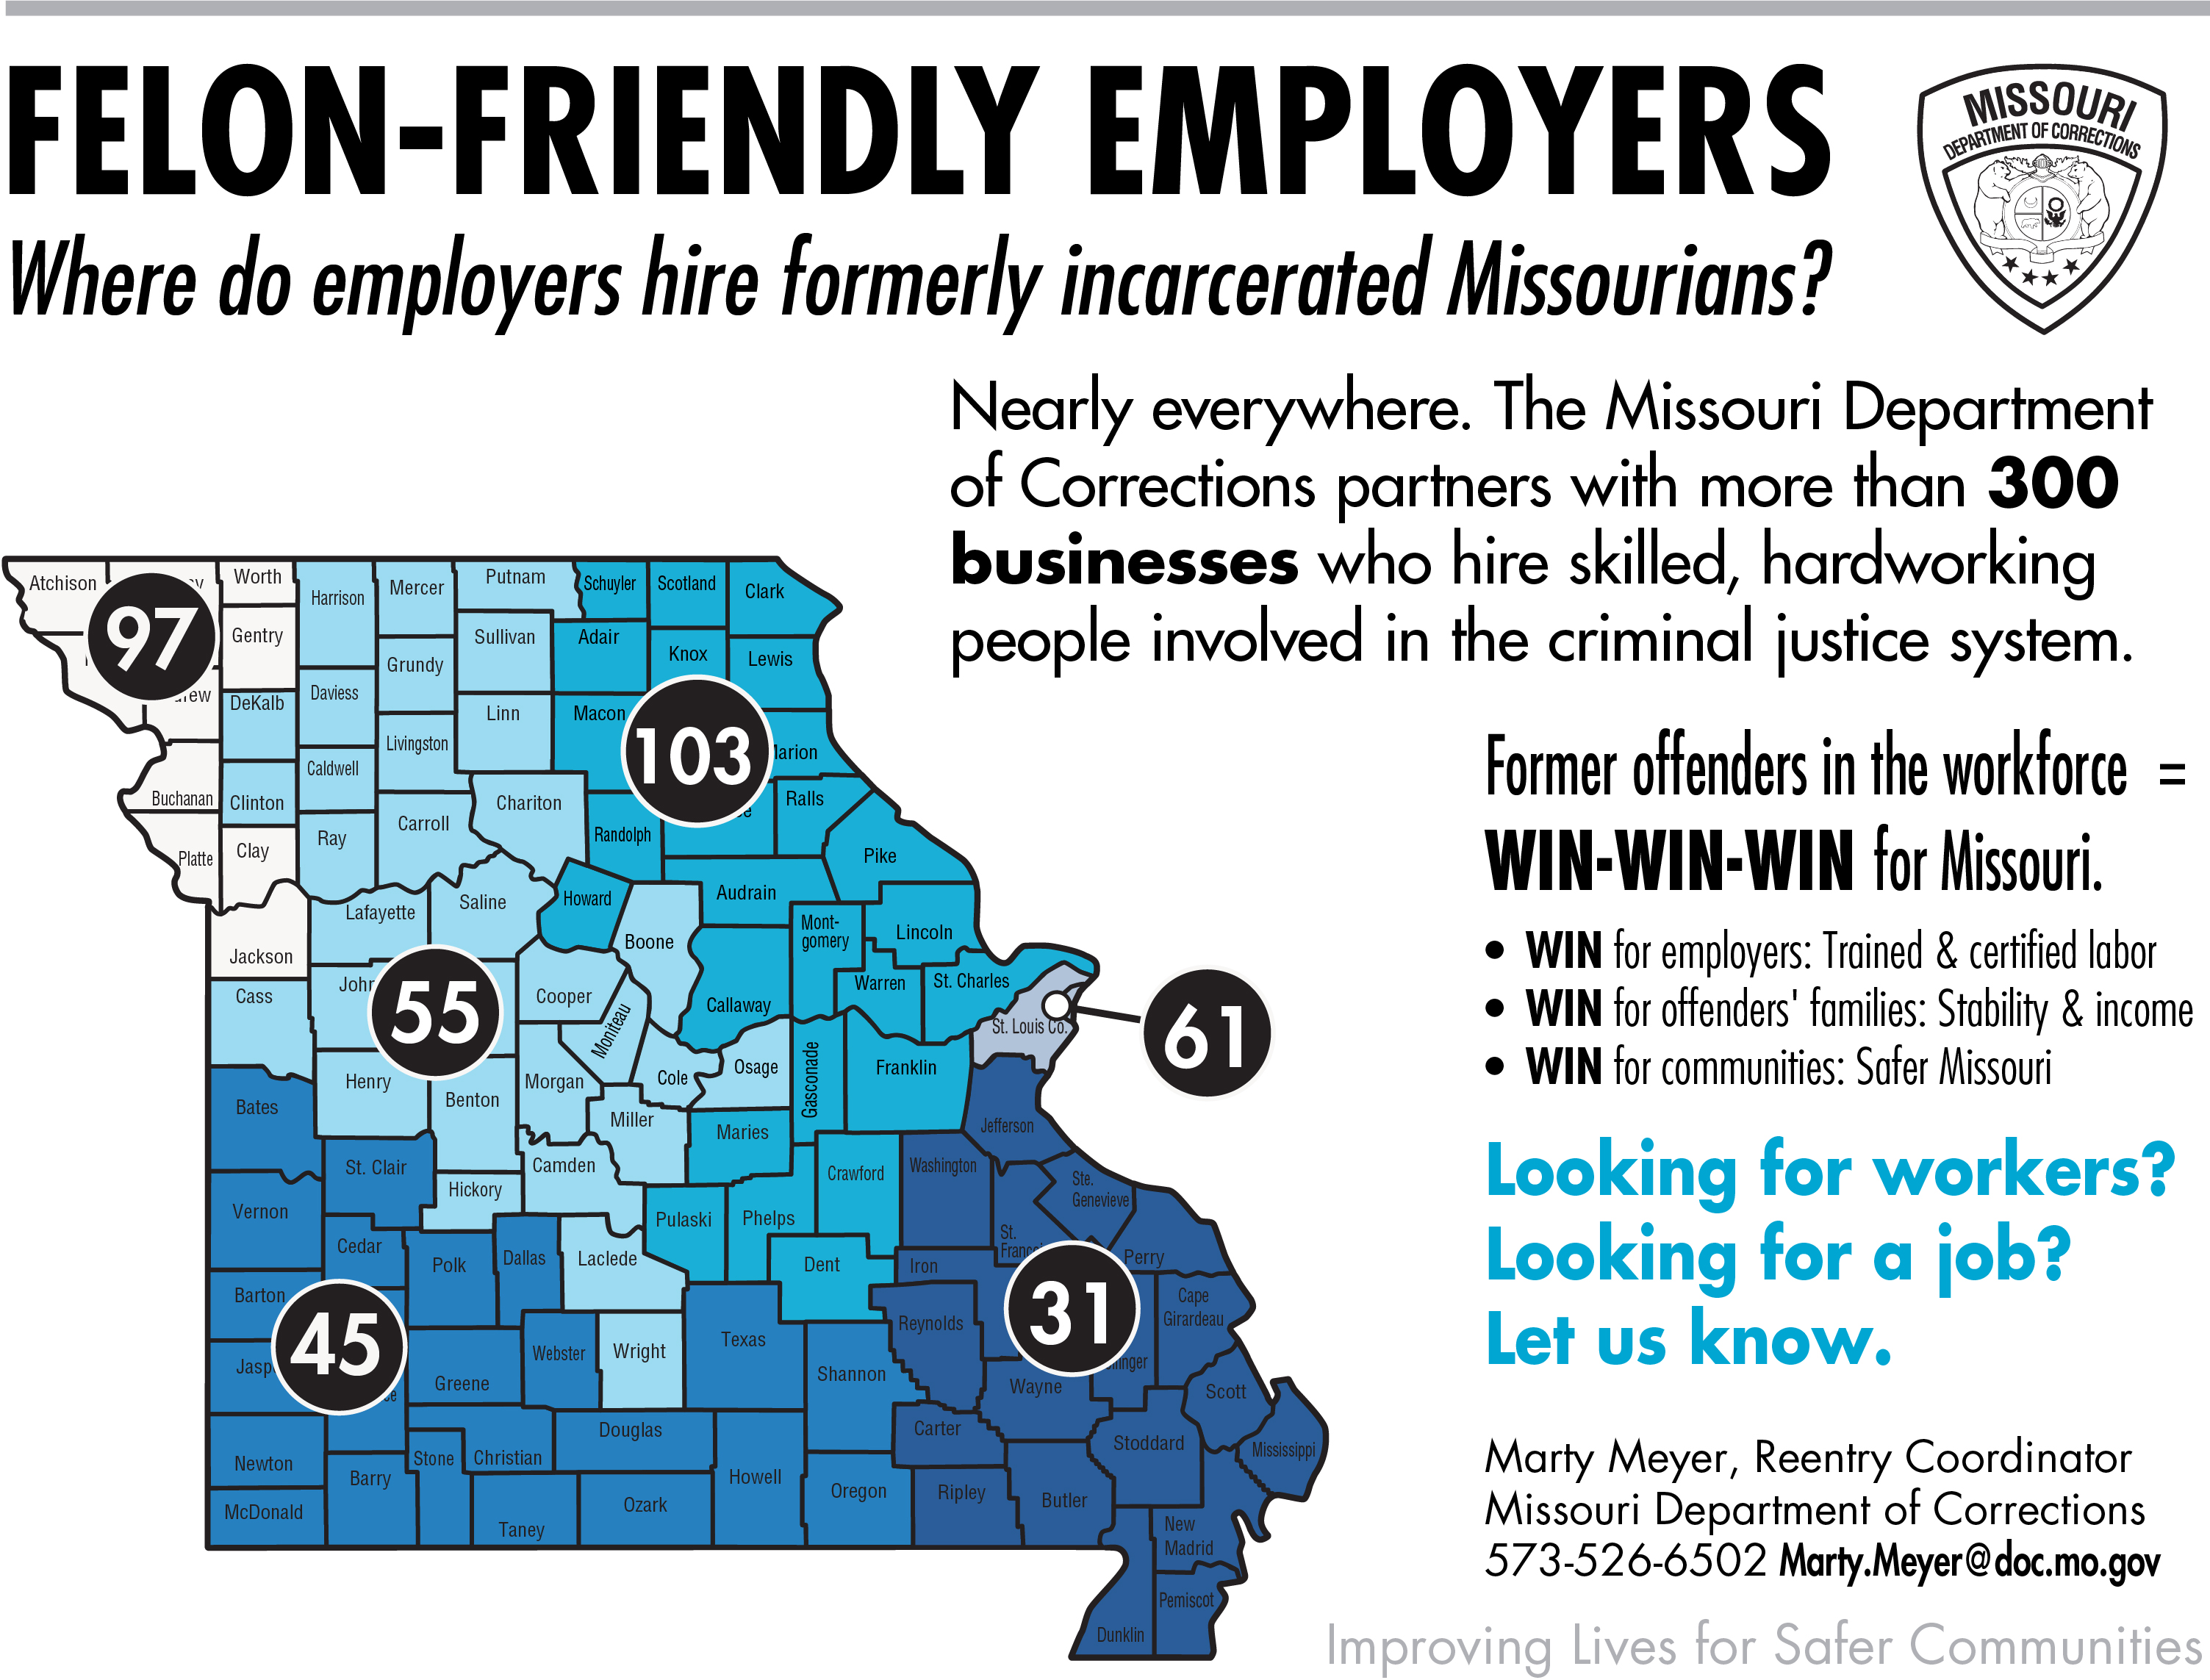 Felon Friendly Employers by region infographic